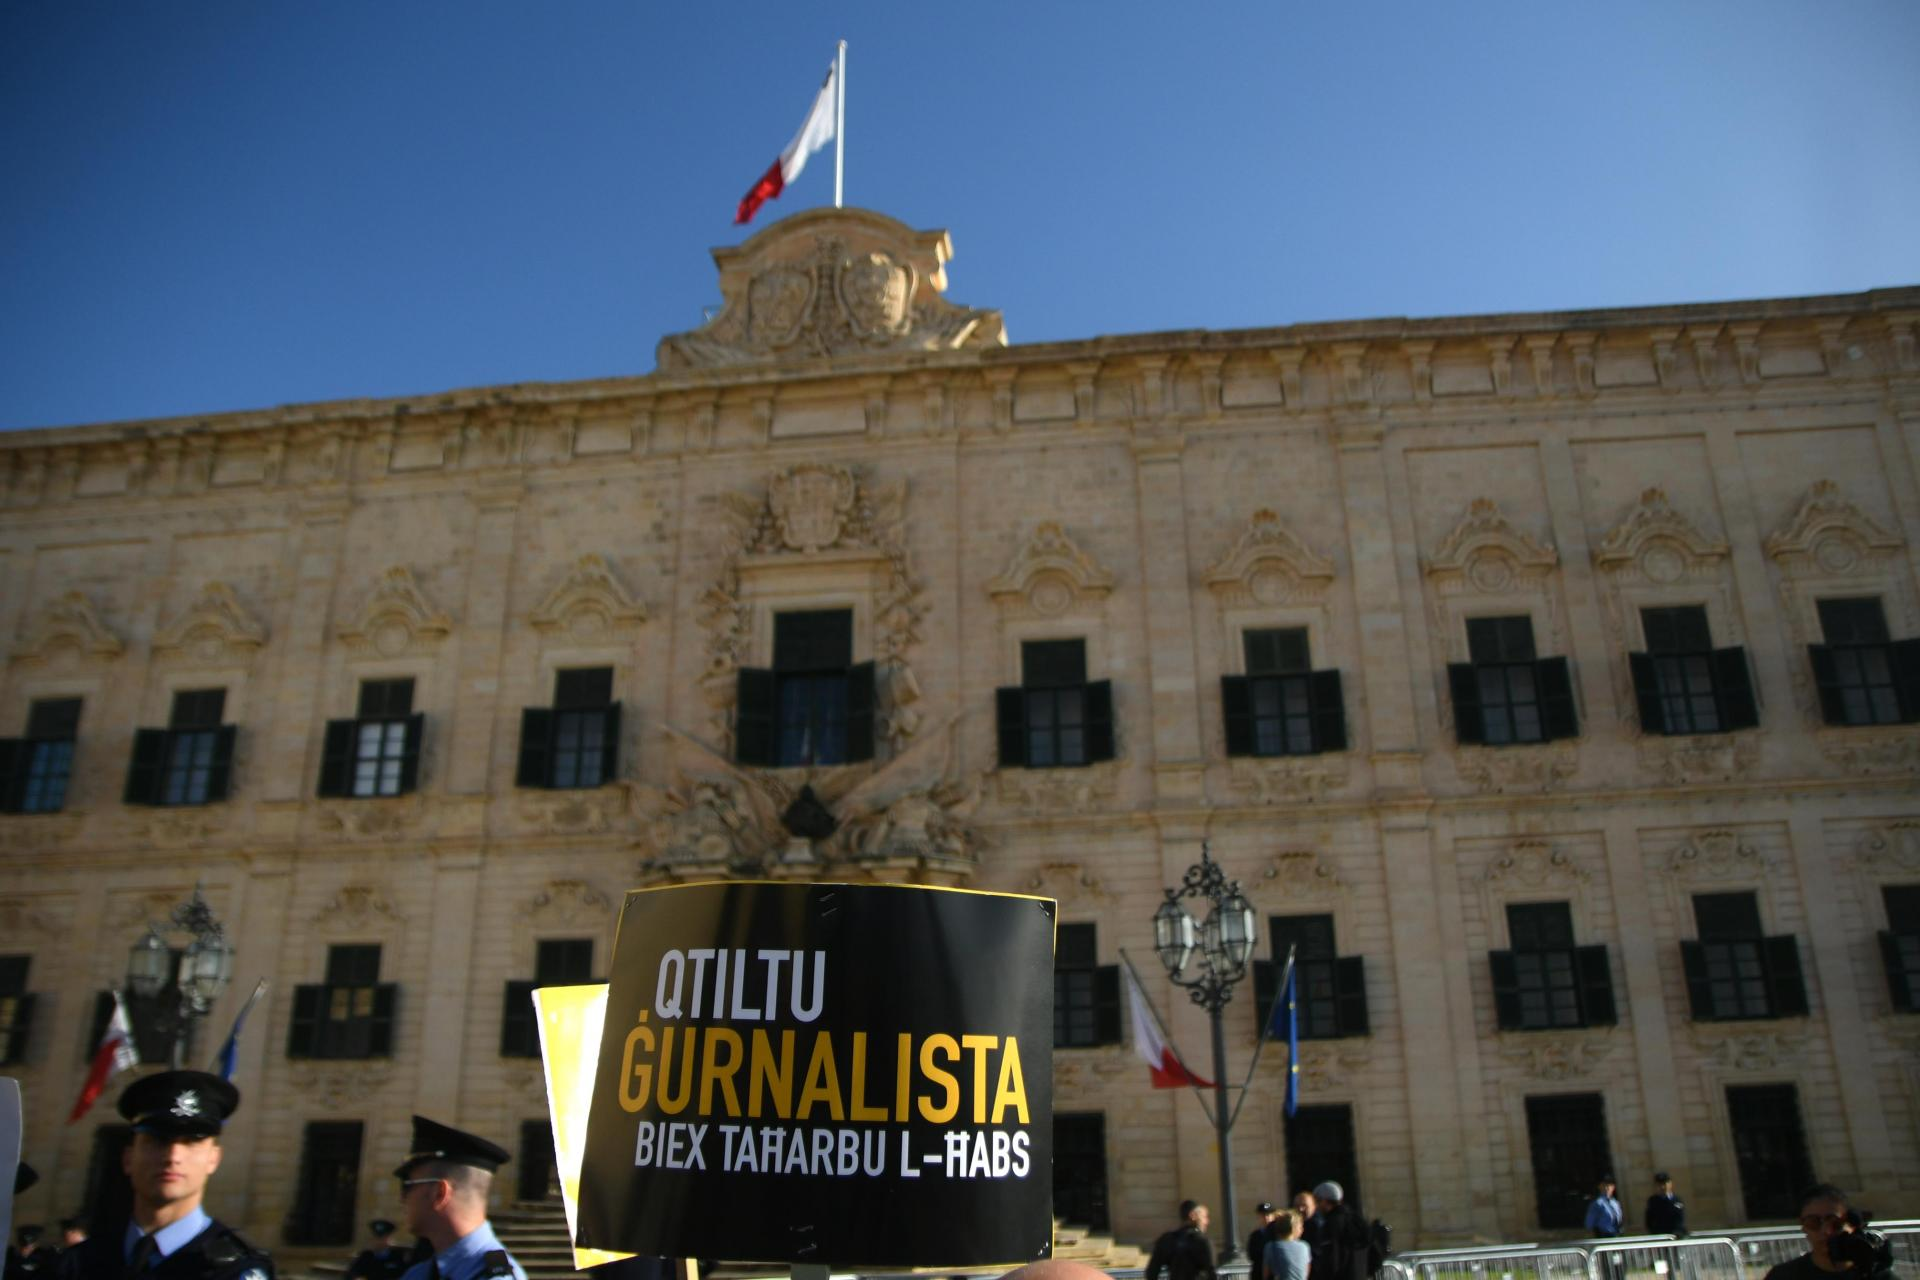 Police keep watch as protesters hold up placards outside Castille. Photo: Jonathan Borg